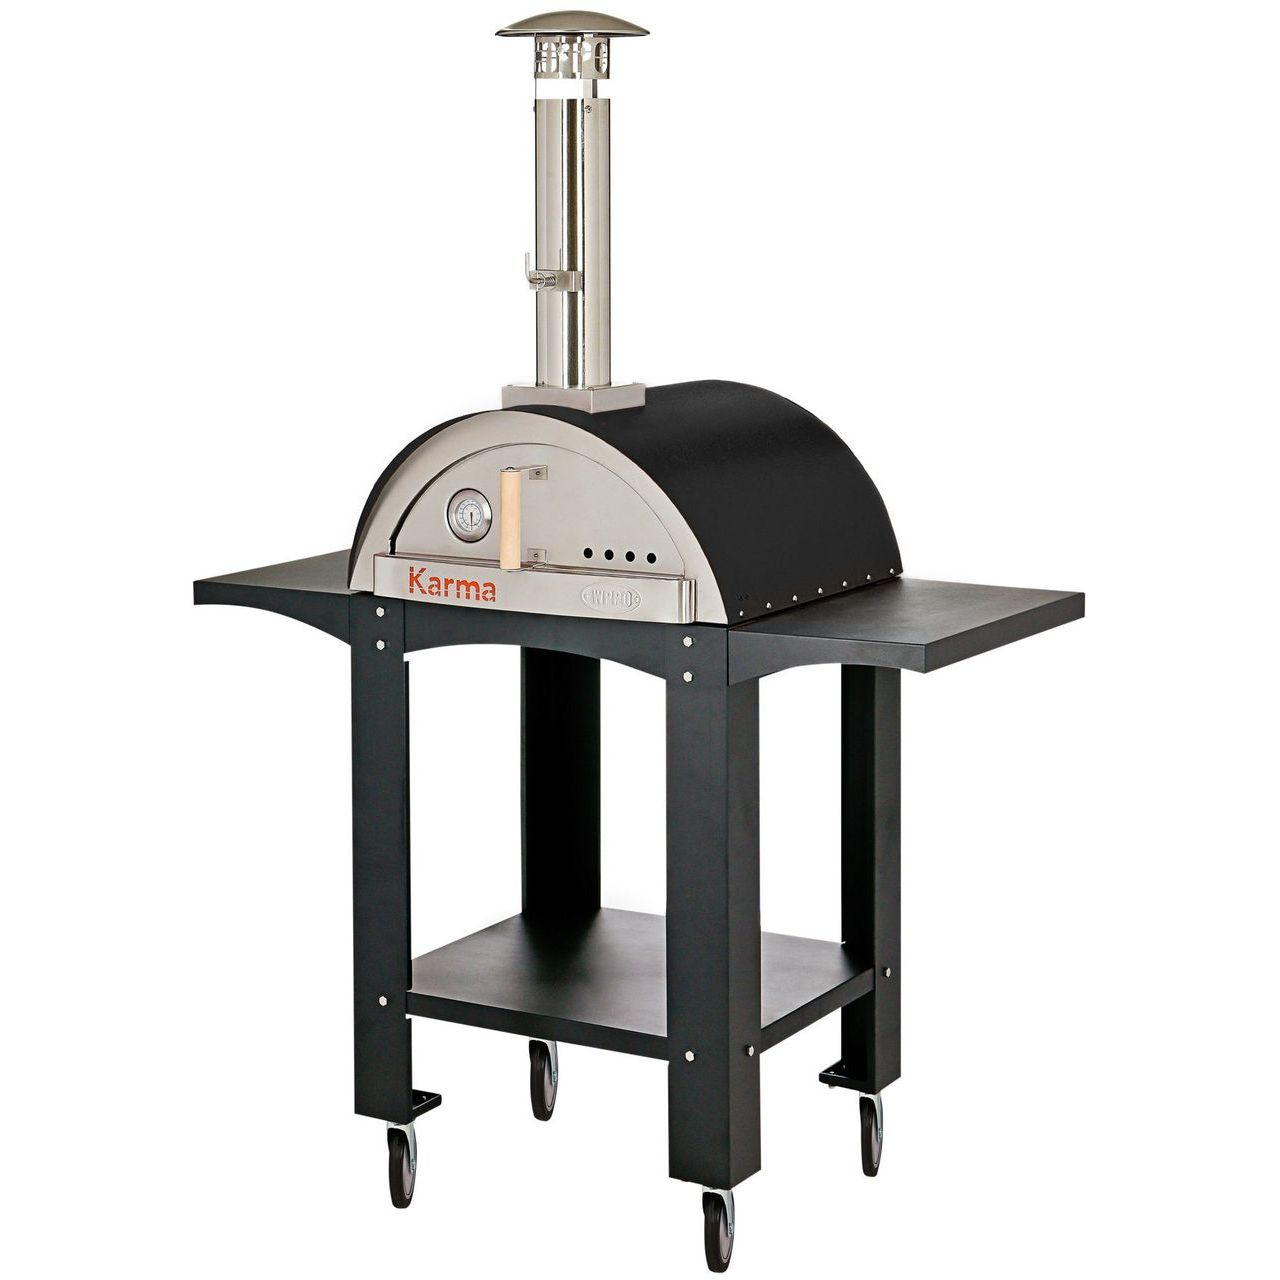 WPPO Karma 25 Wood Fired Pizza Oven With Black Stand - Black